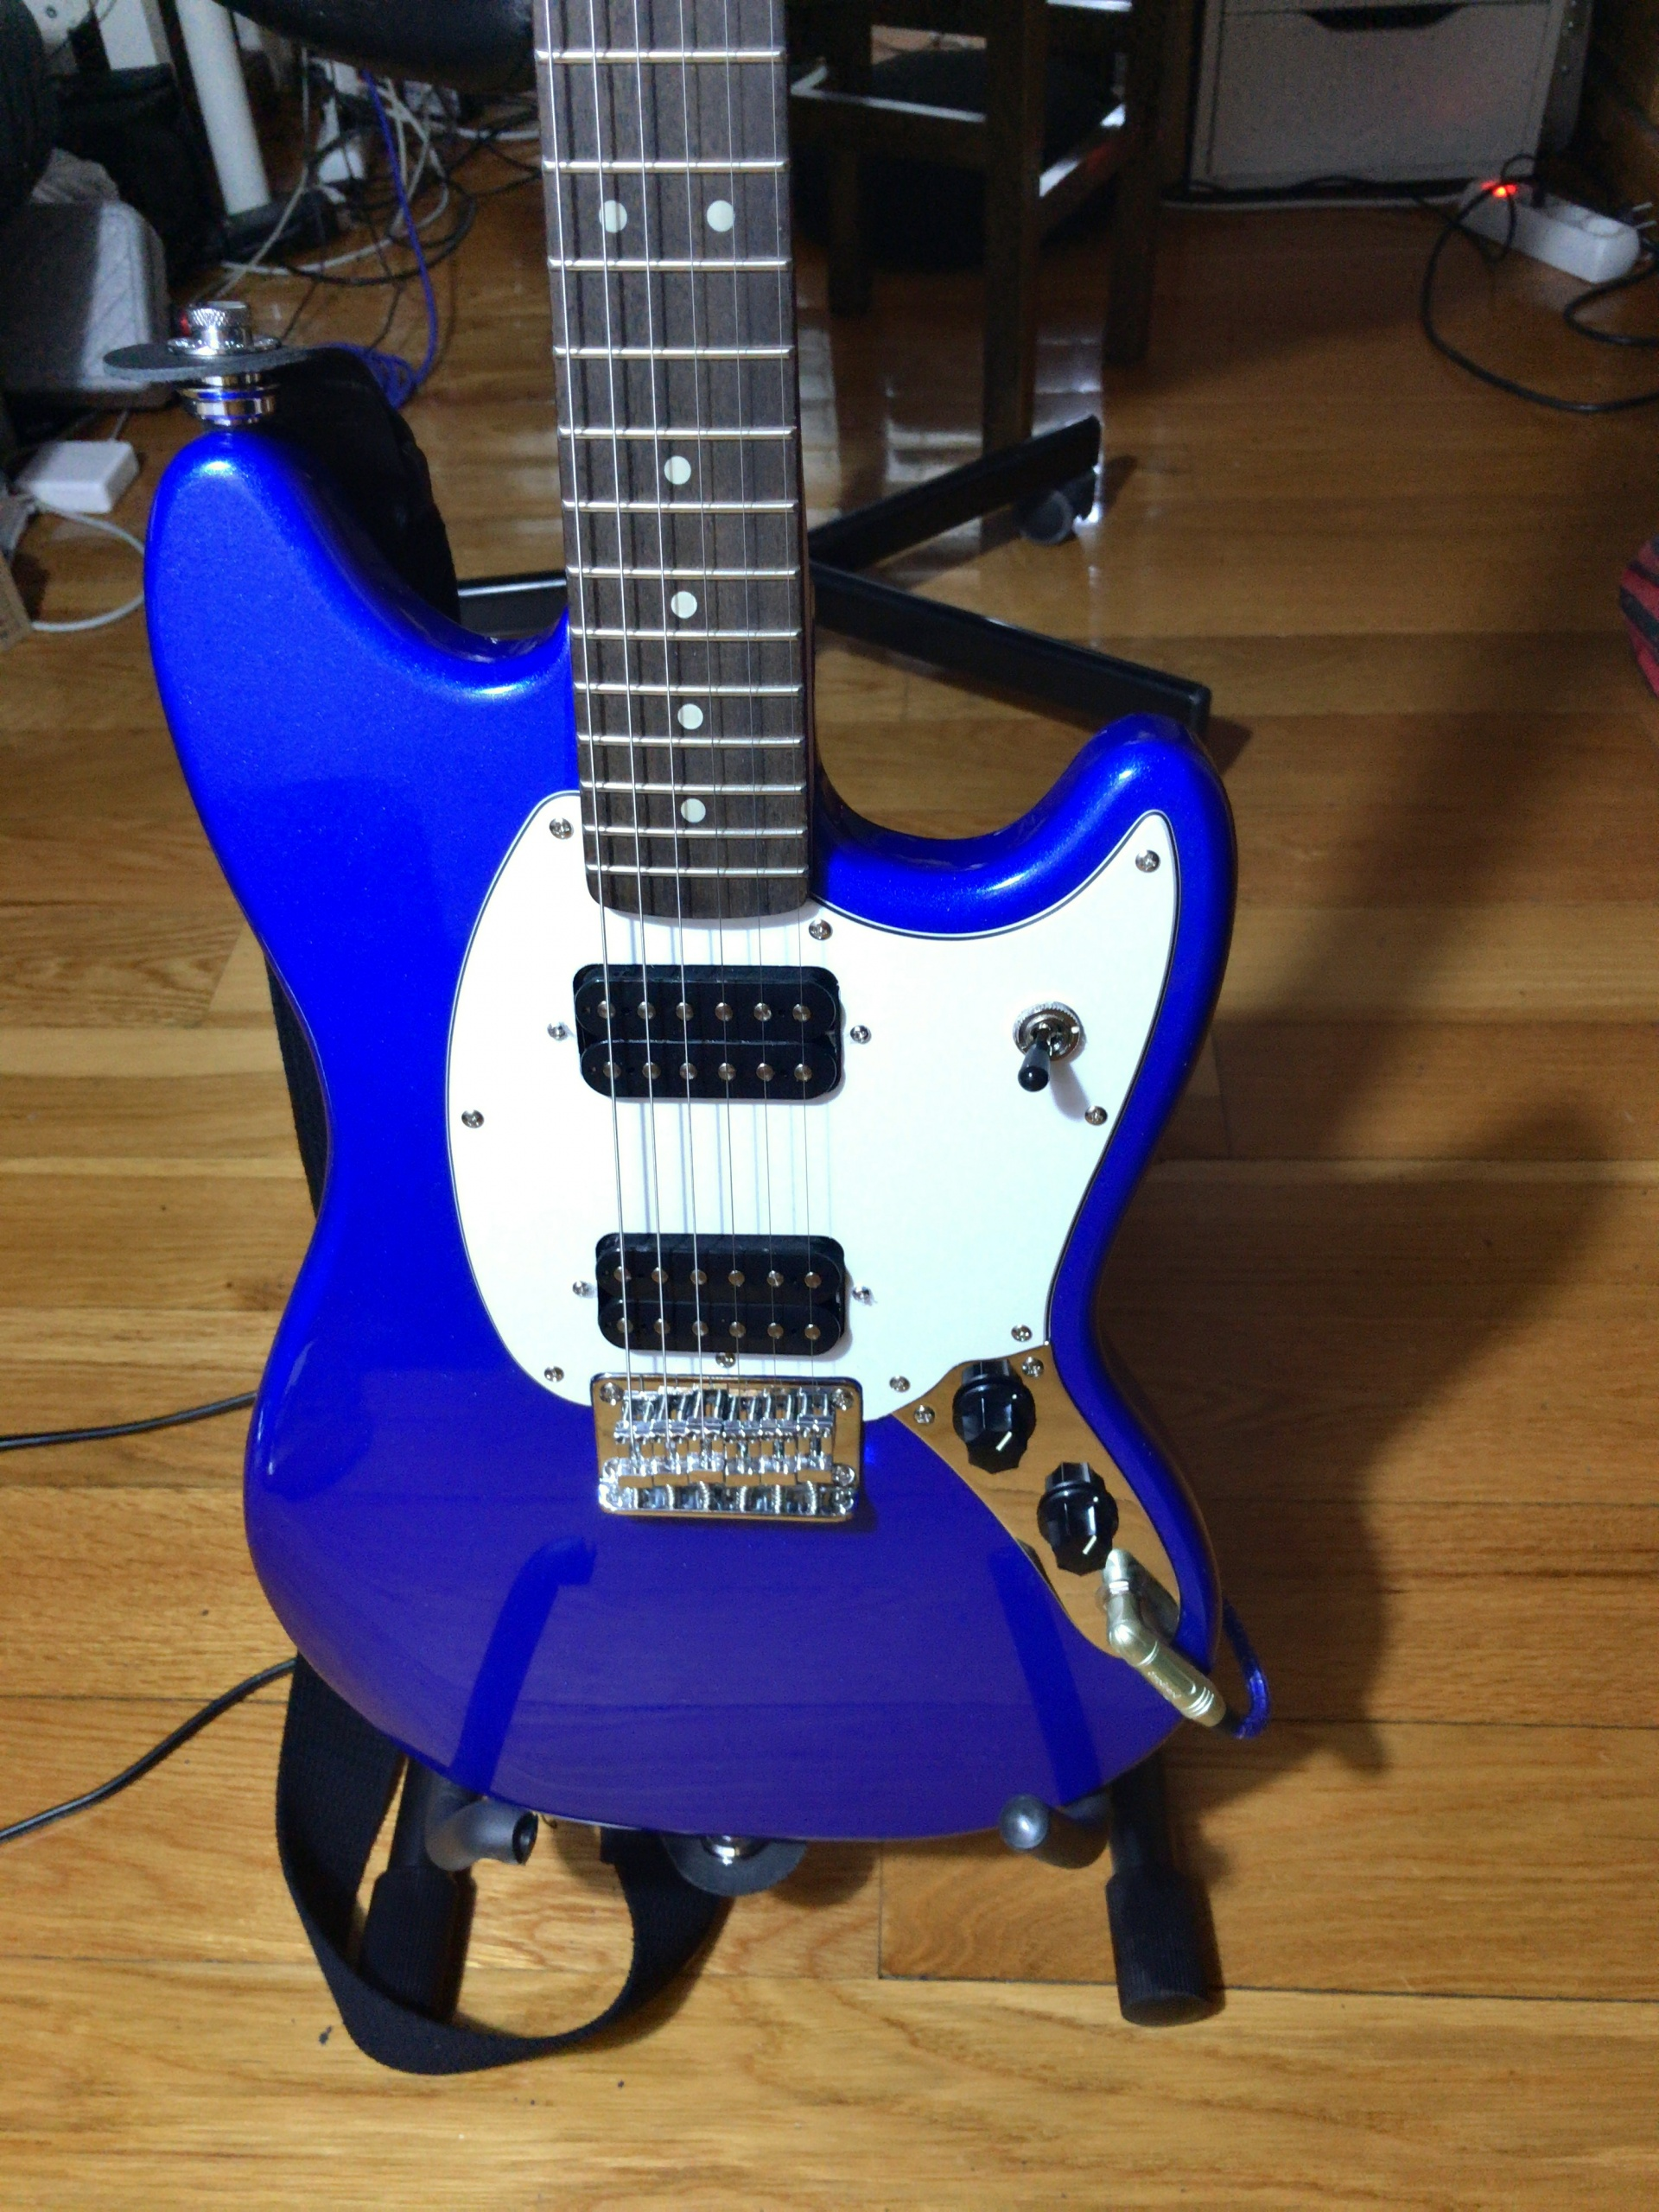 Blue Squier Bullet Mustang body before the mod